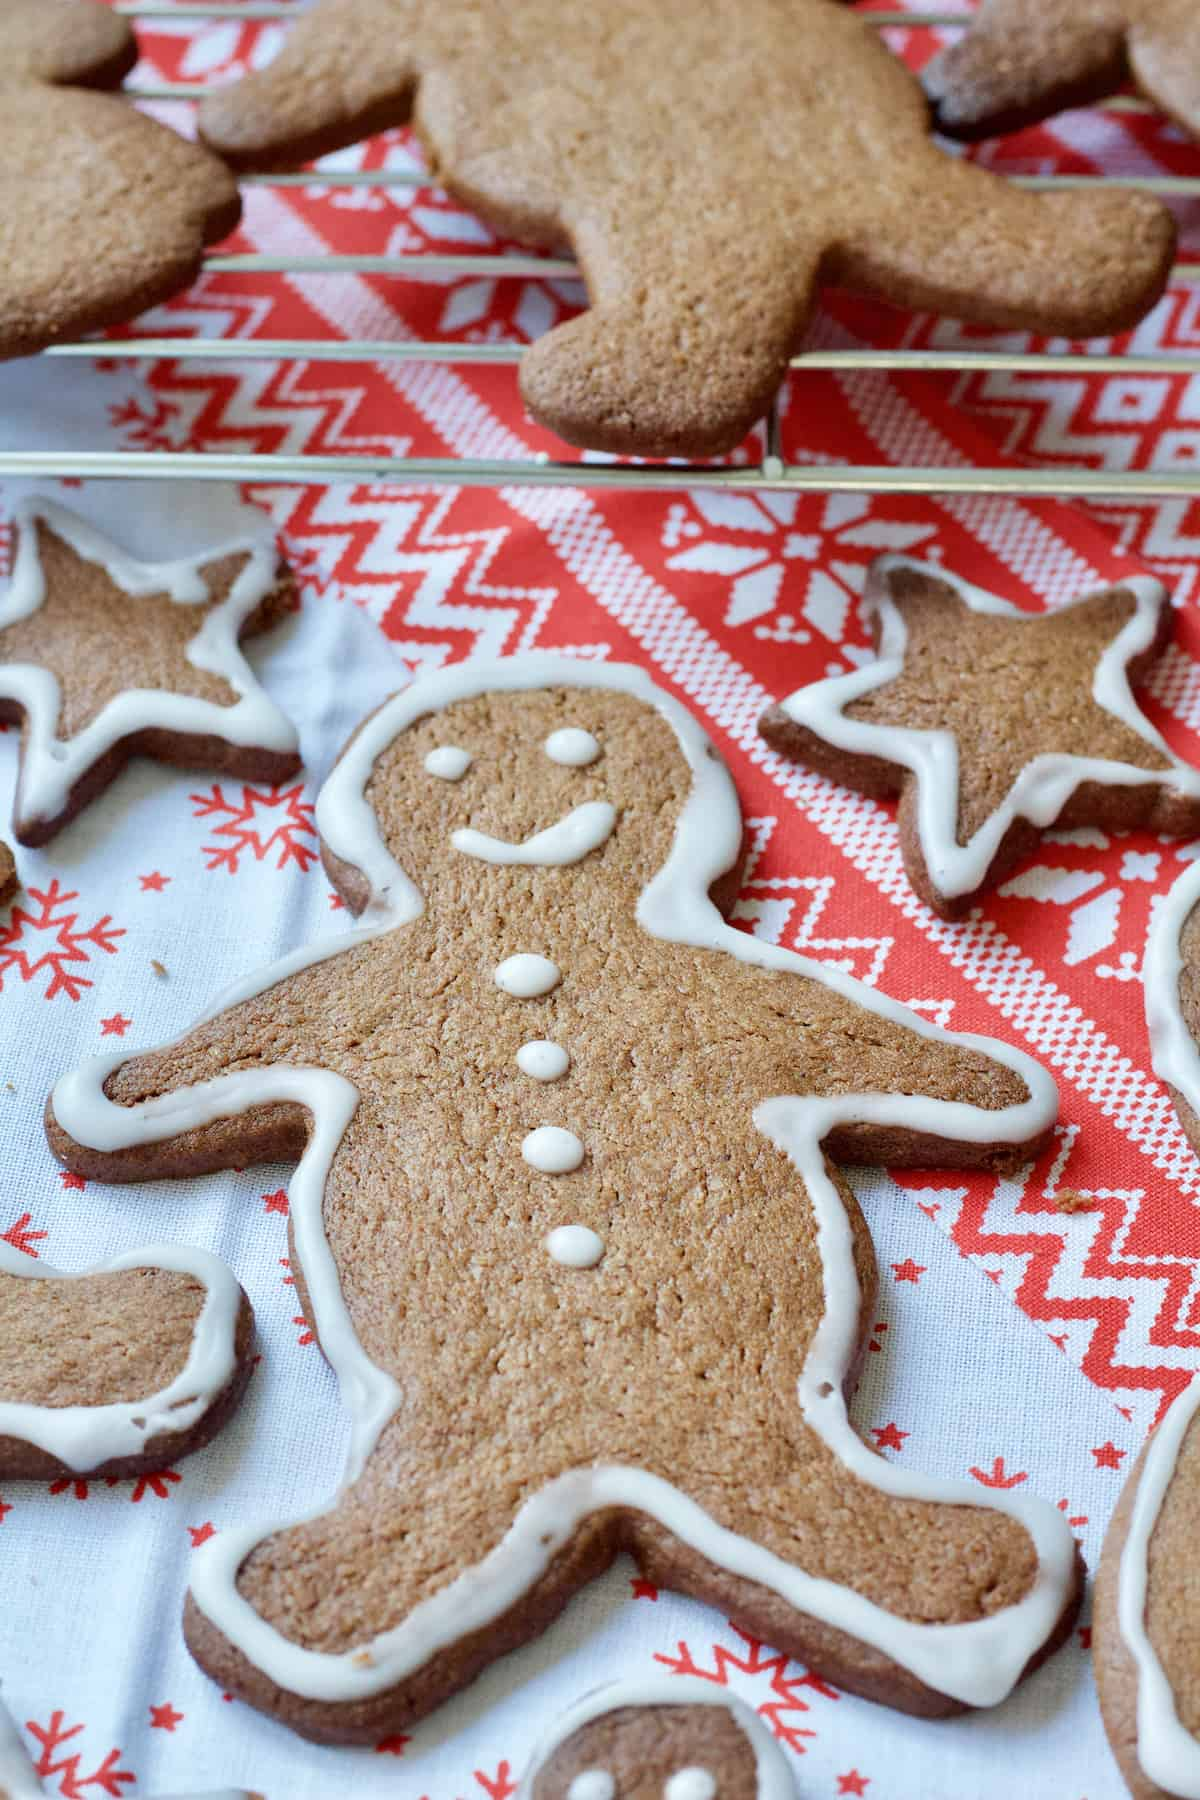 Iced gingerbread man biscuit.